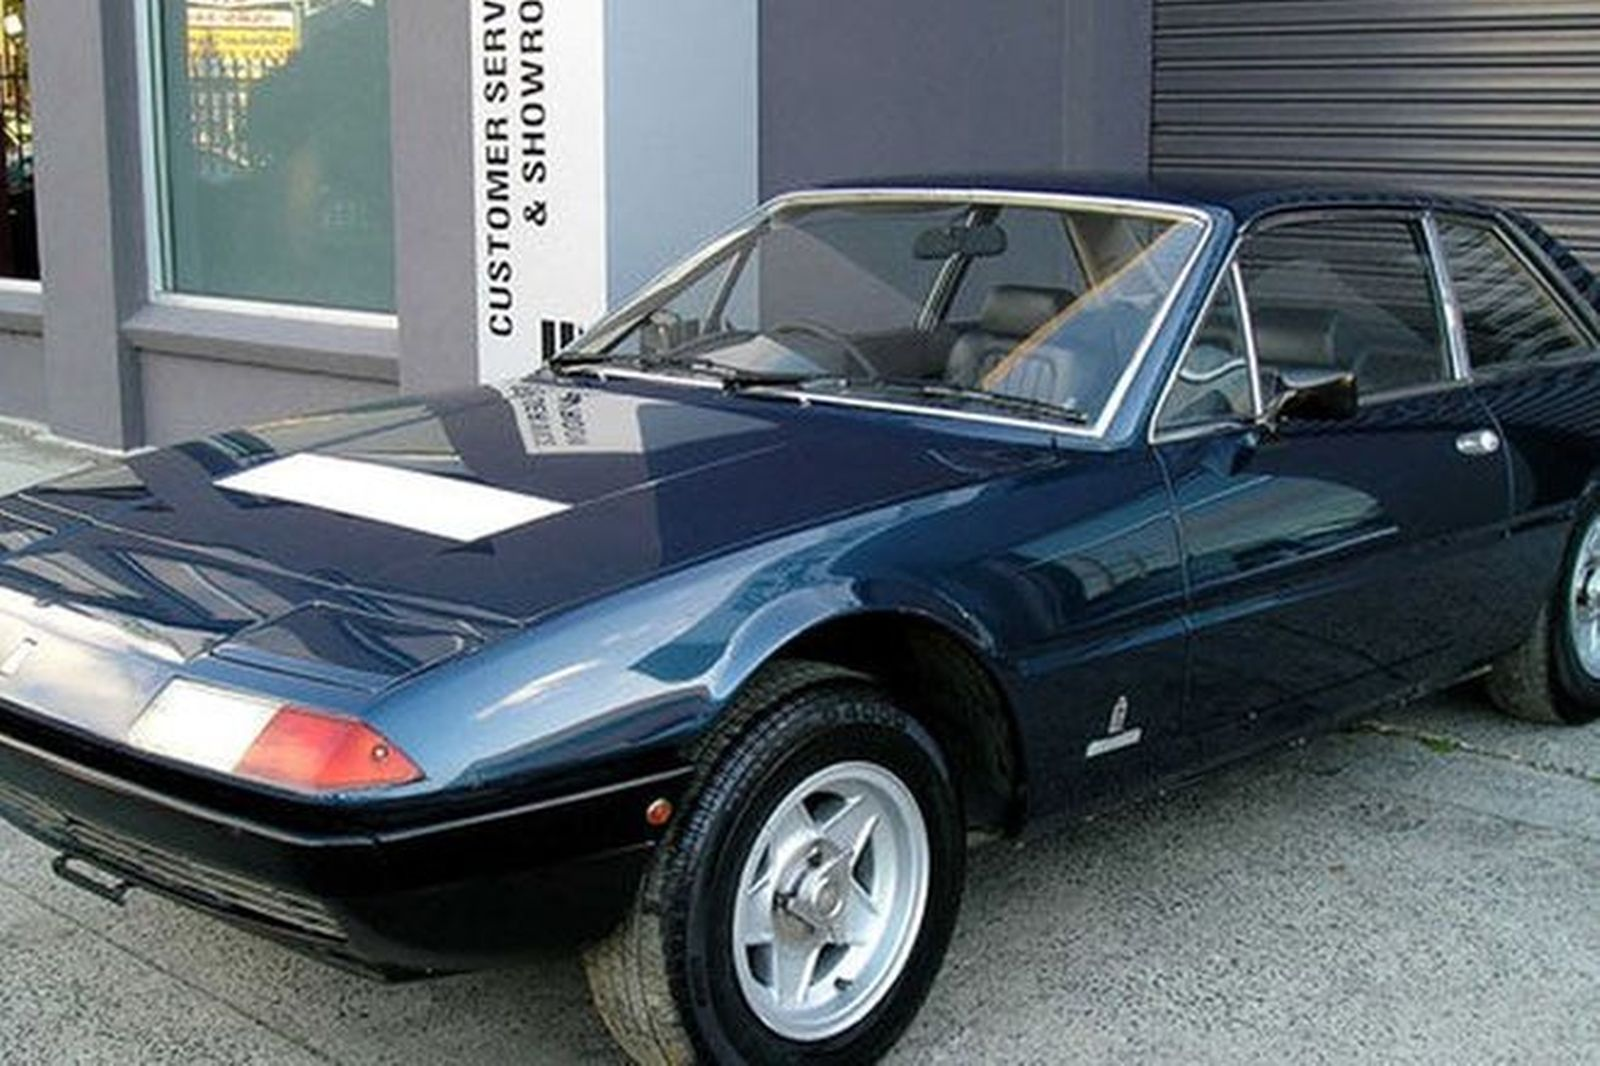 sold ferrari 365 gt4 22 coupe project auctions lot 8